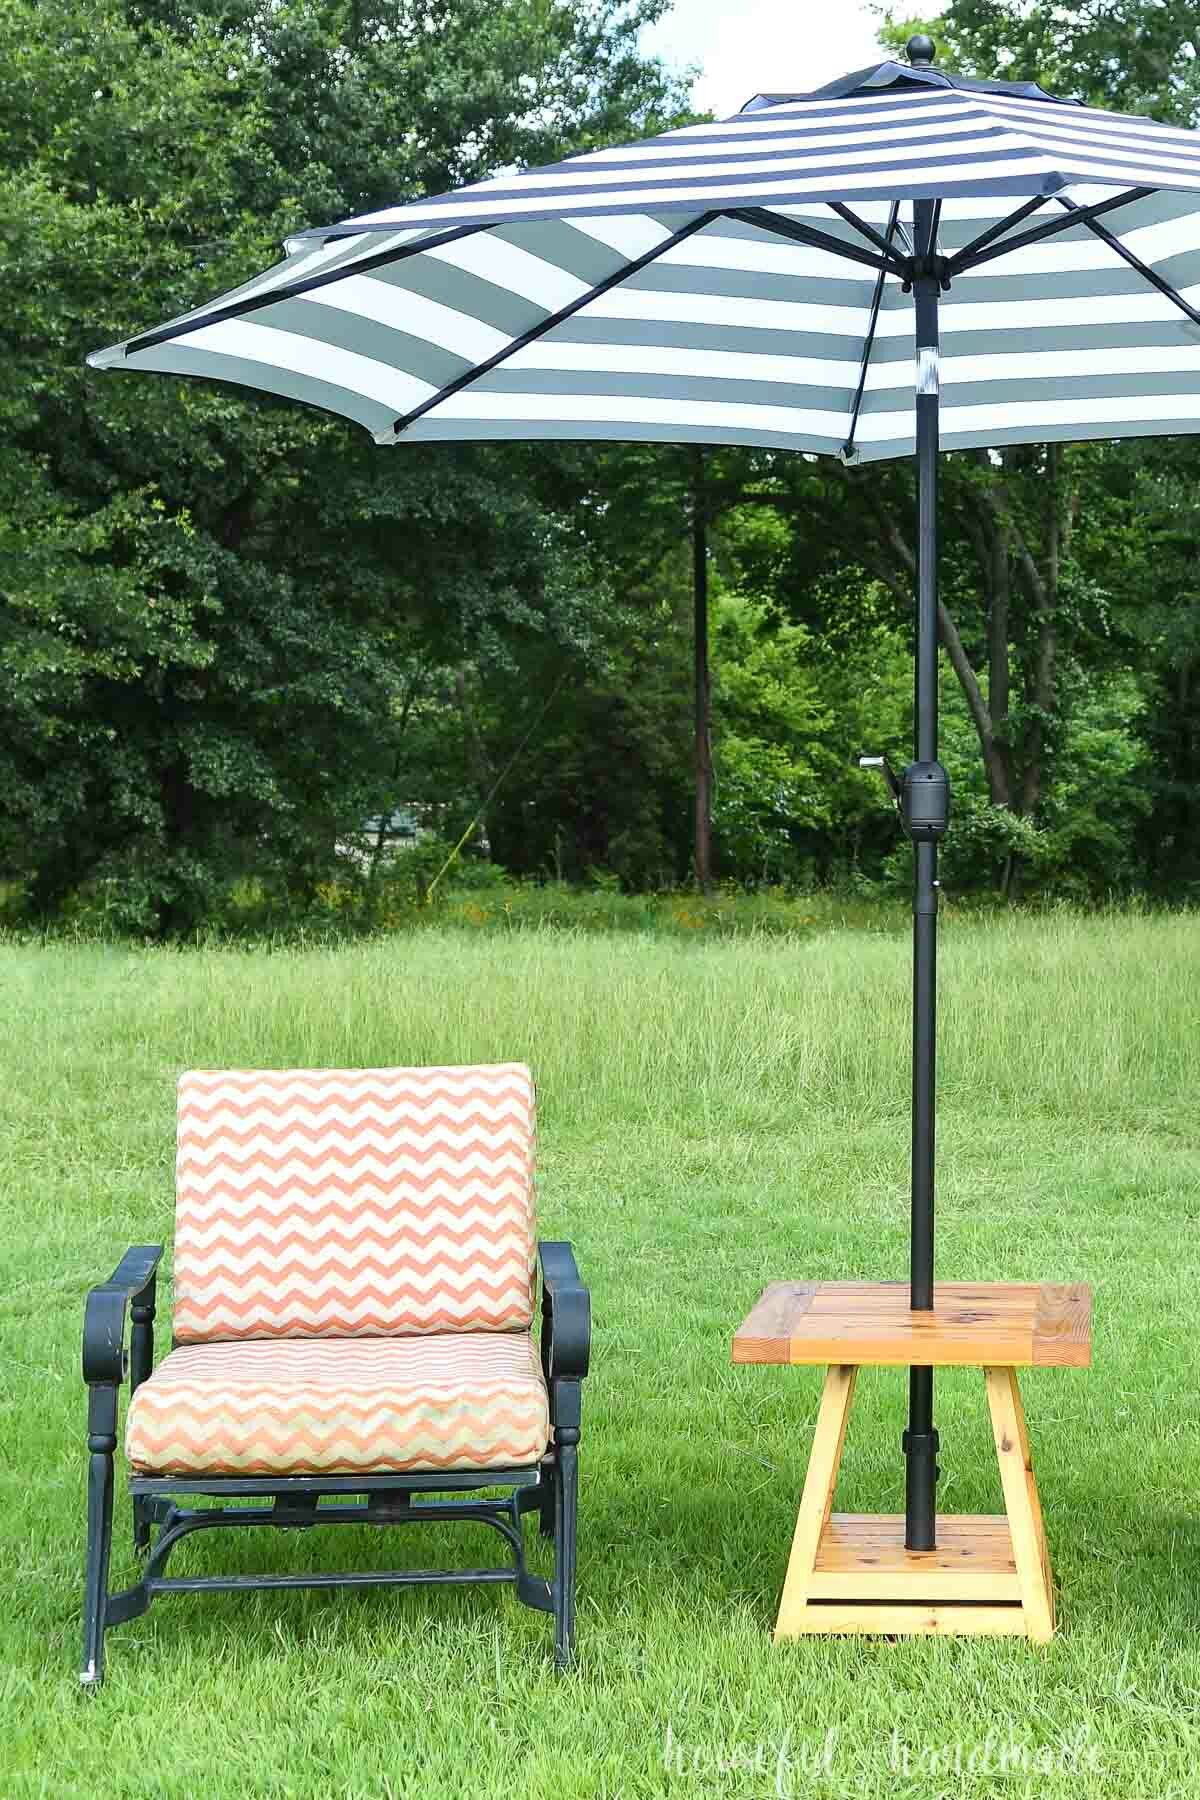 Umbrella side table set up on the lawn next to an orange and white cushioned chair.